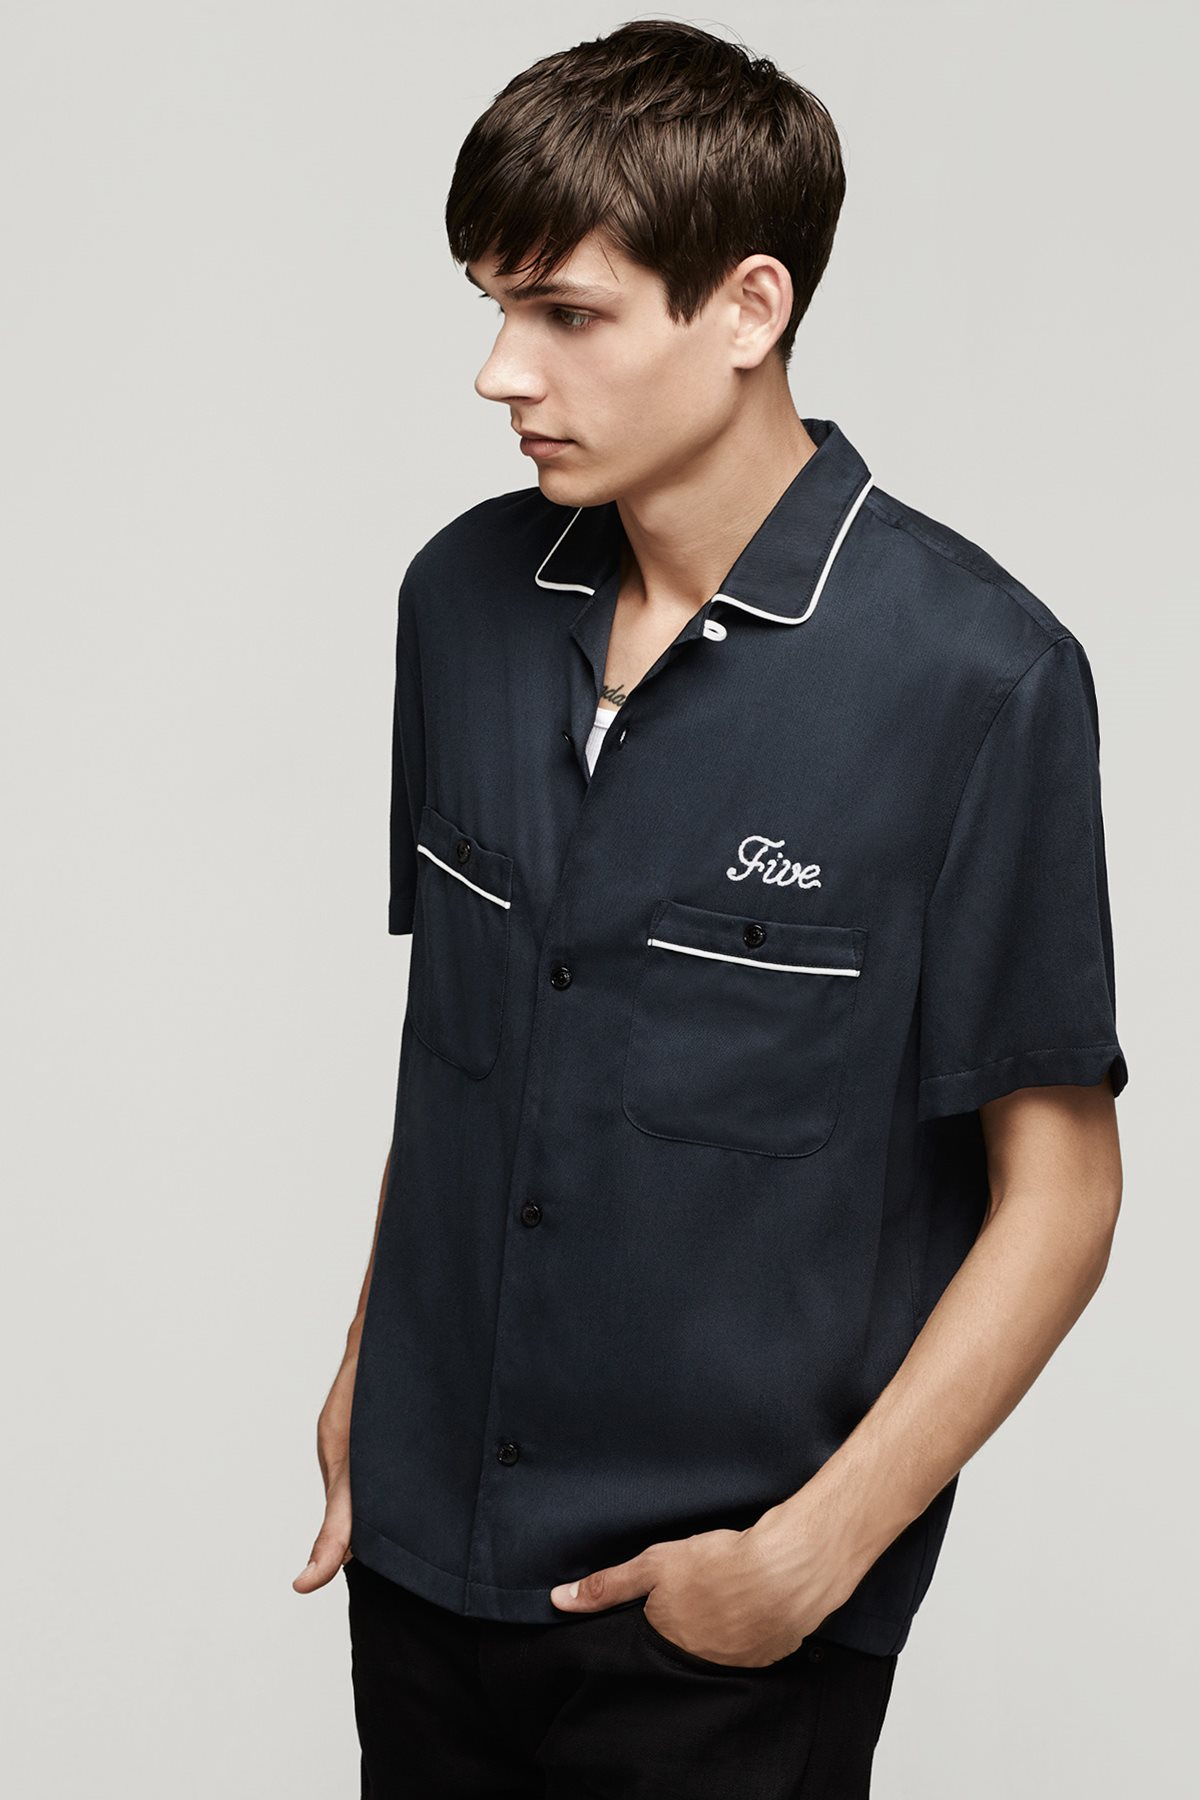 saint laurent bowling shirt